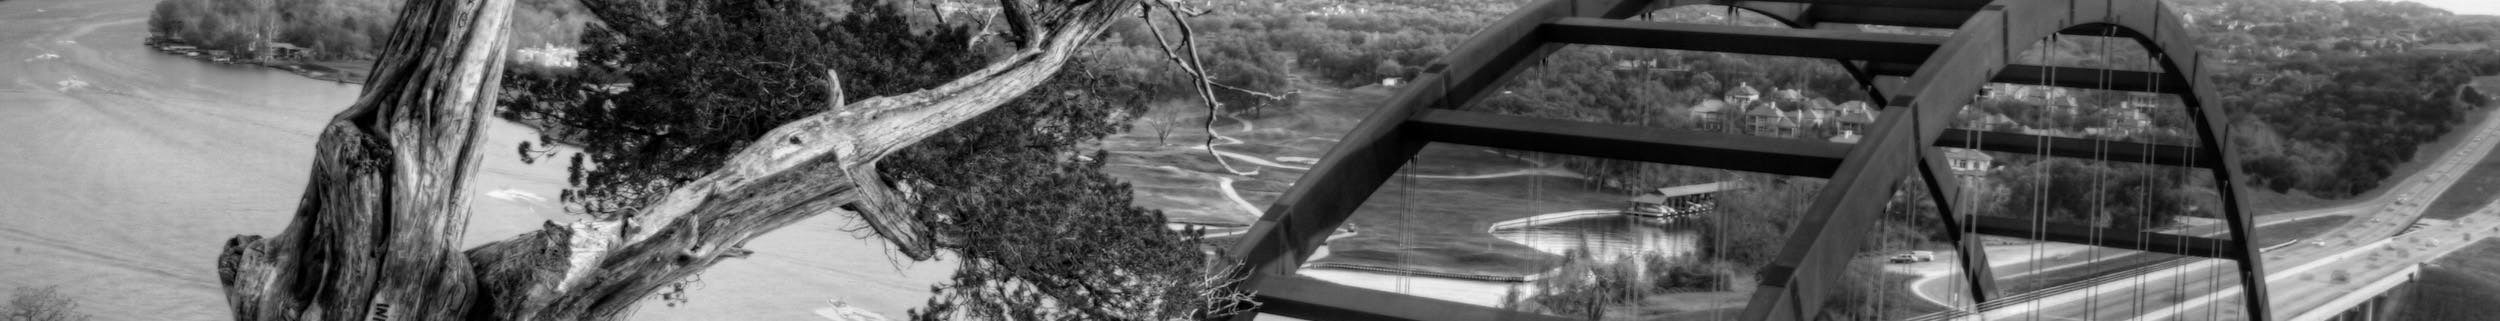 Image of Pennybacker Bridge